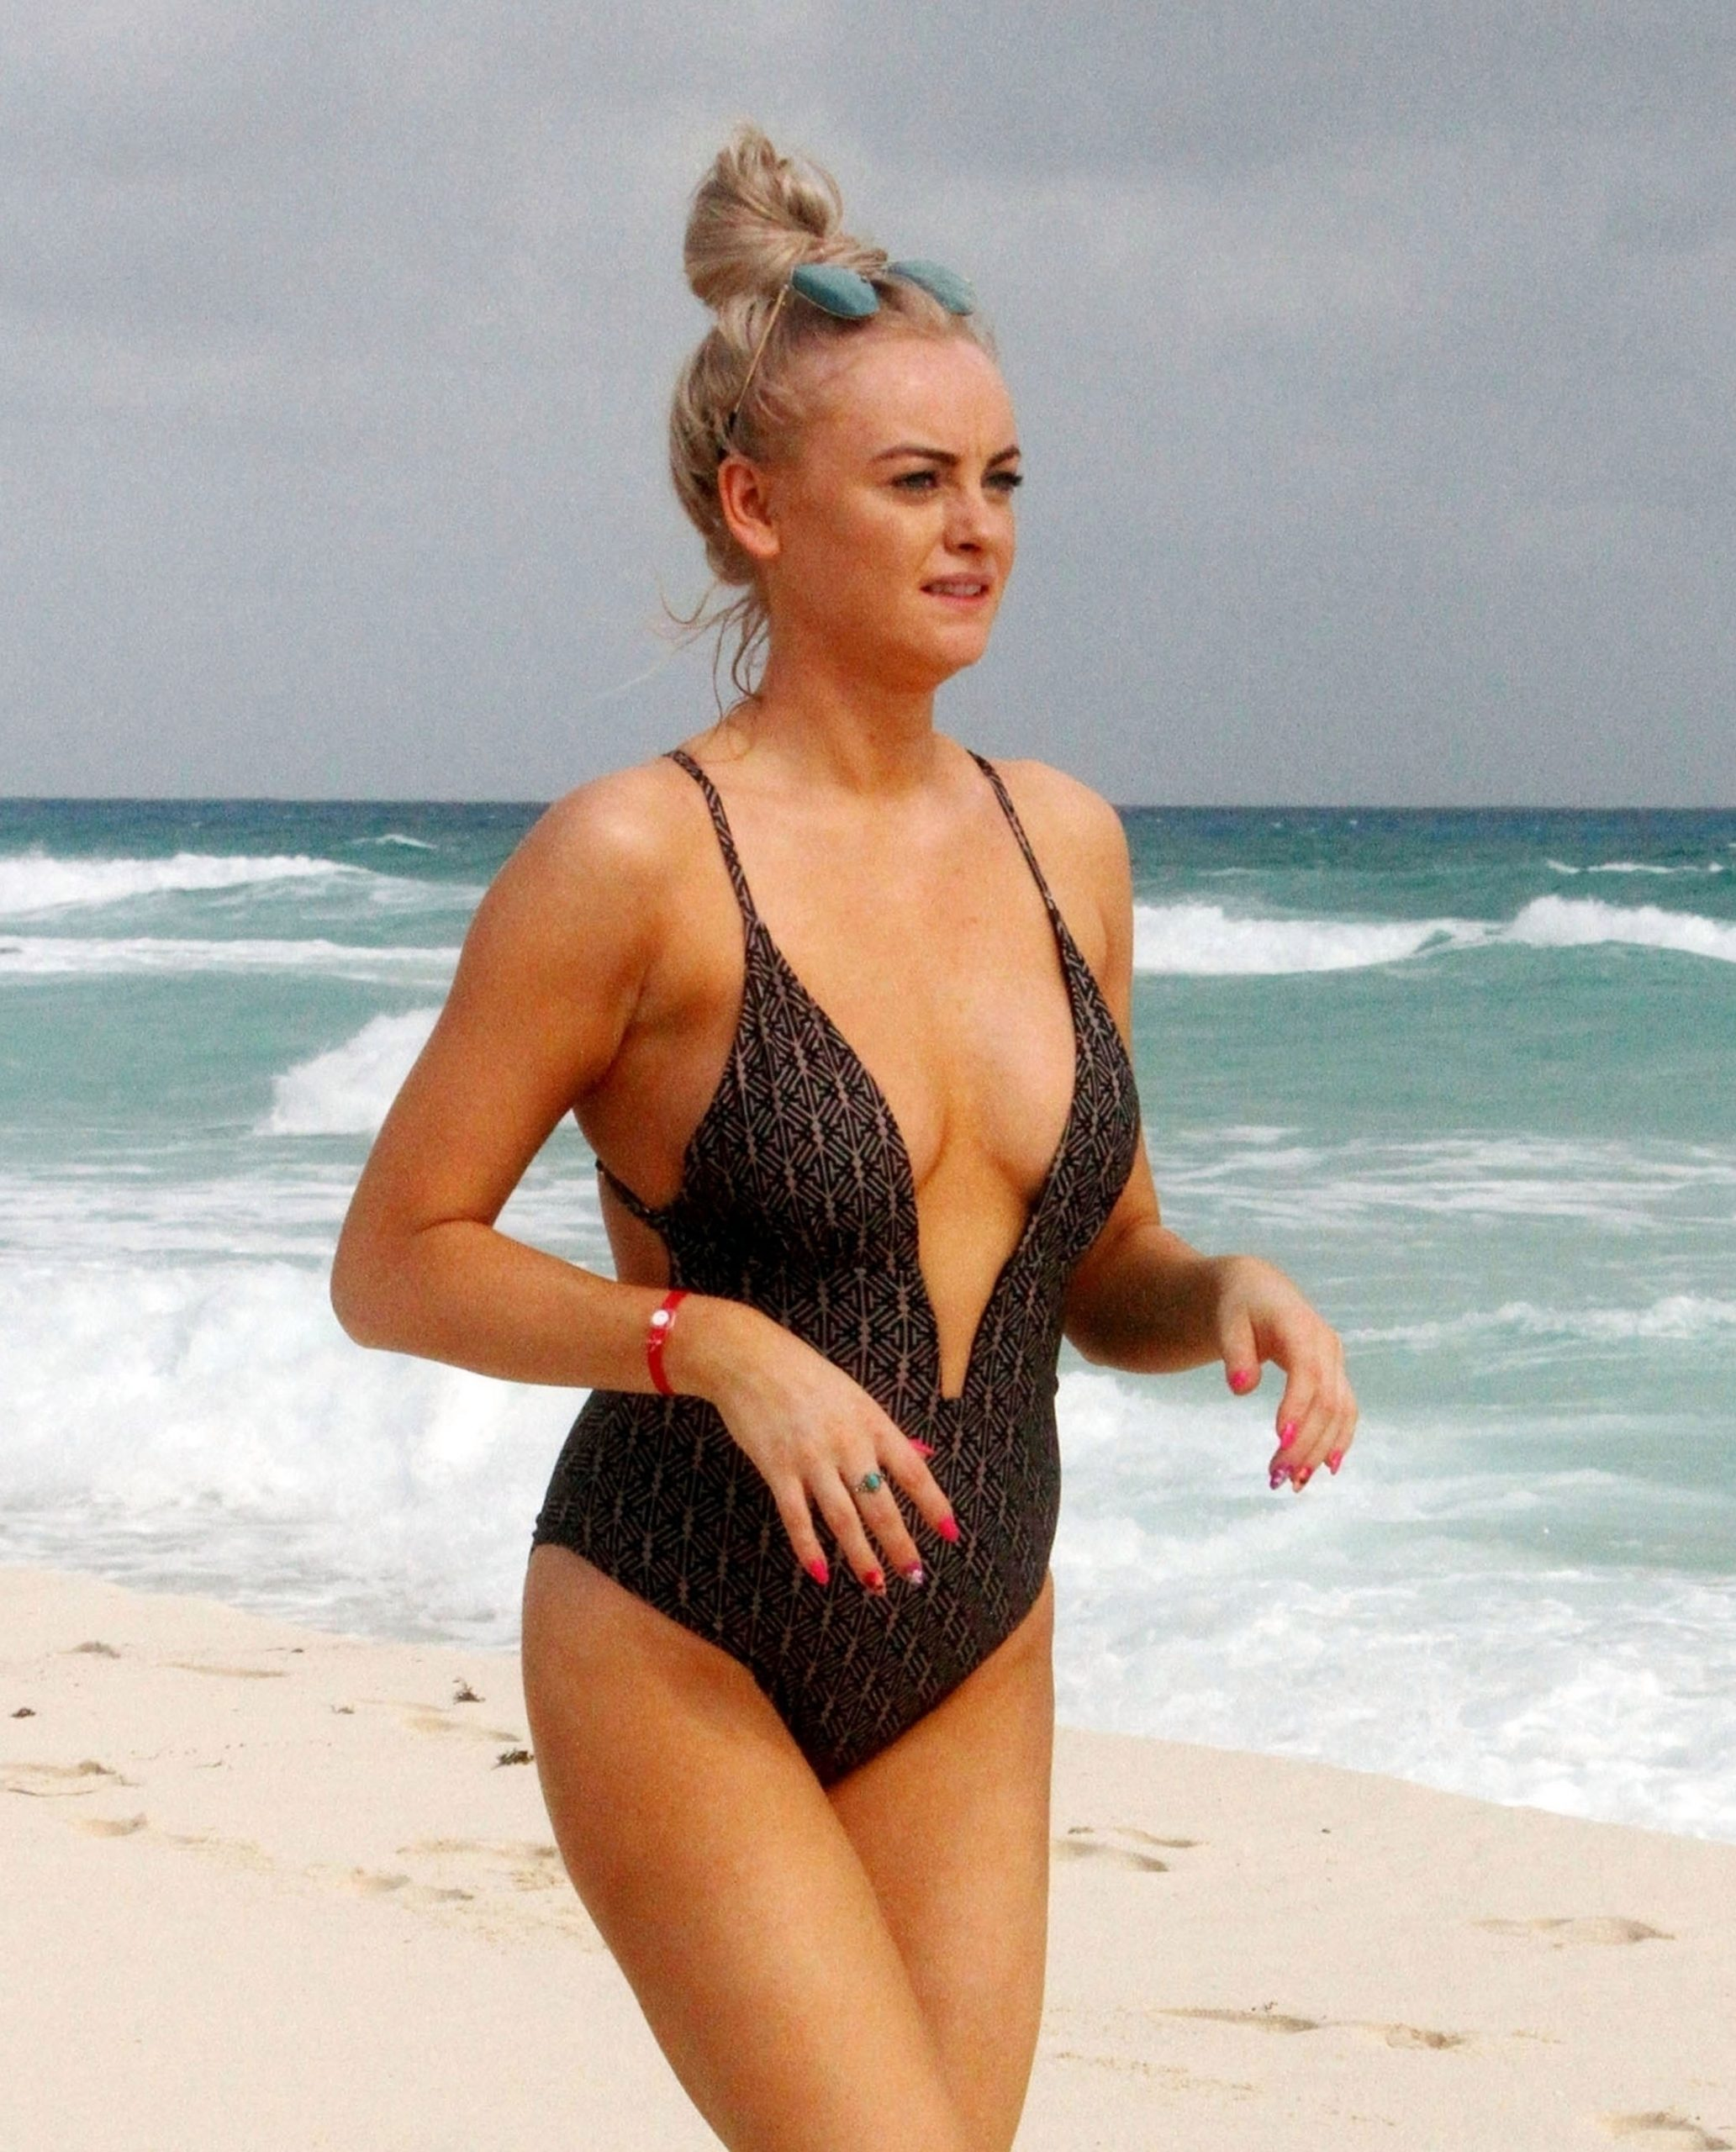 Katie Mcglynn Shows Off Her Sexy Body In A Black Swimsuit 0003